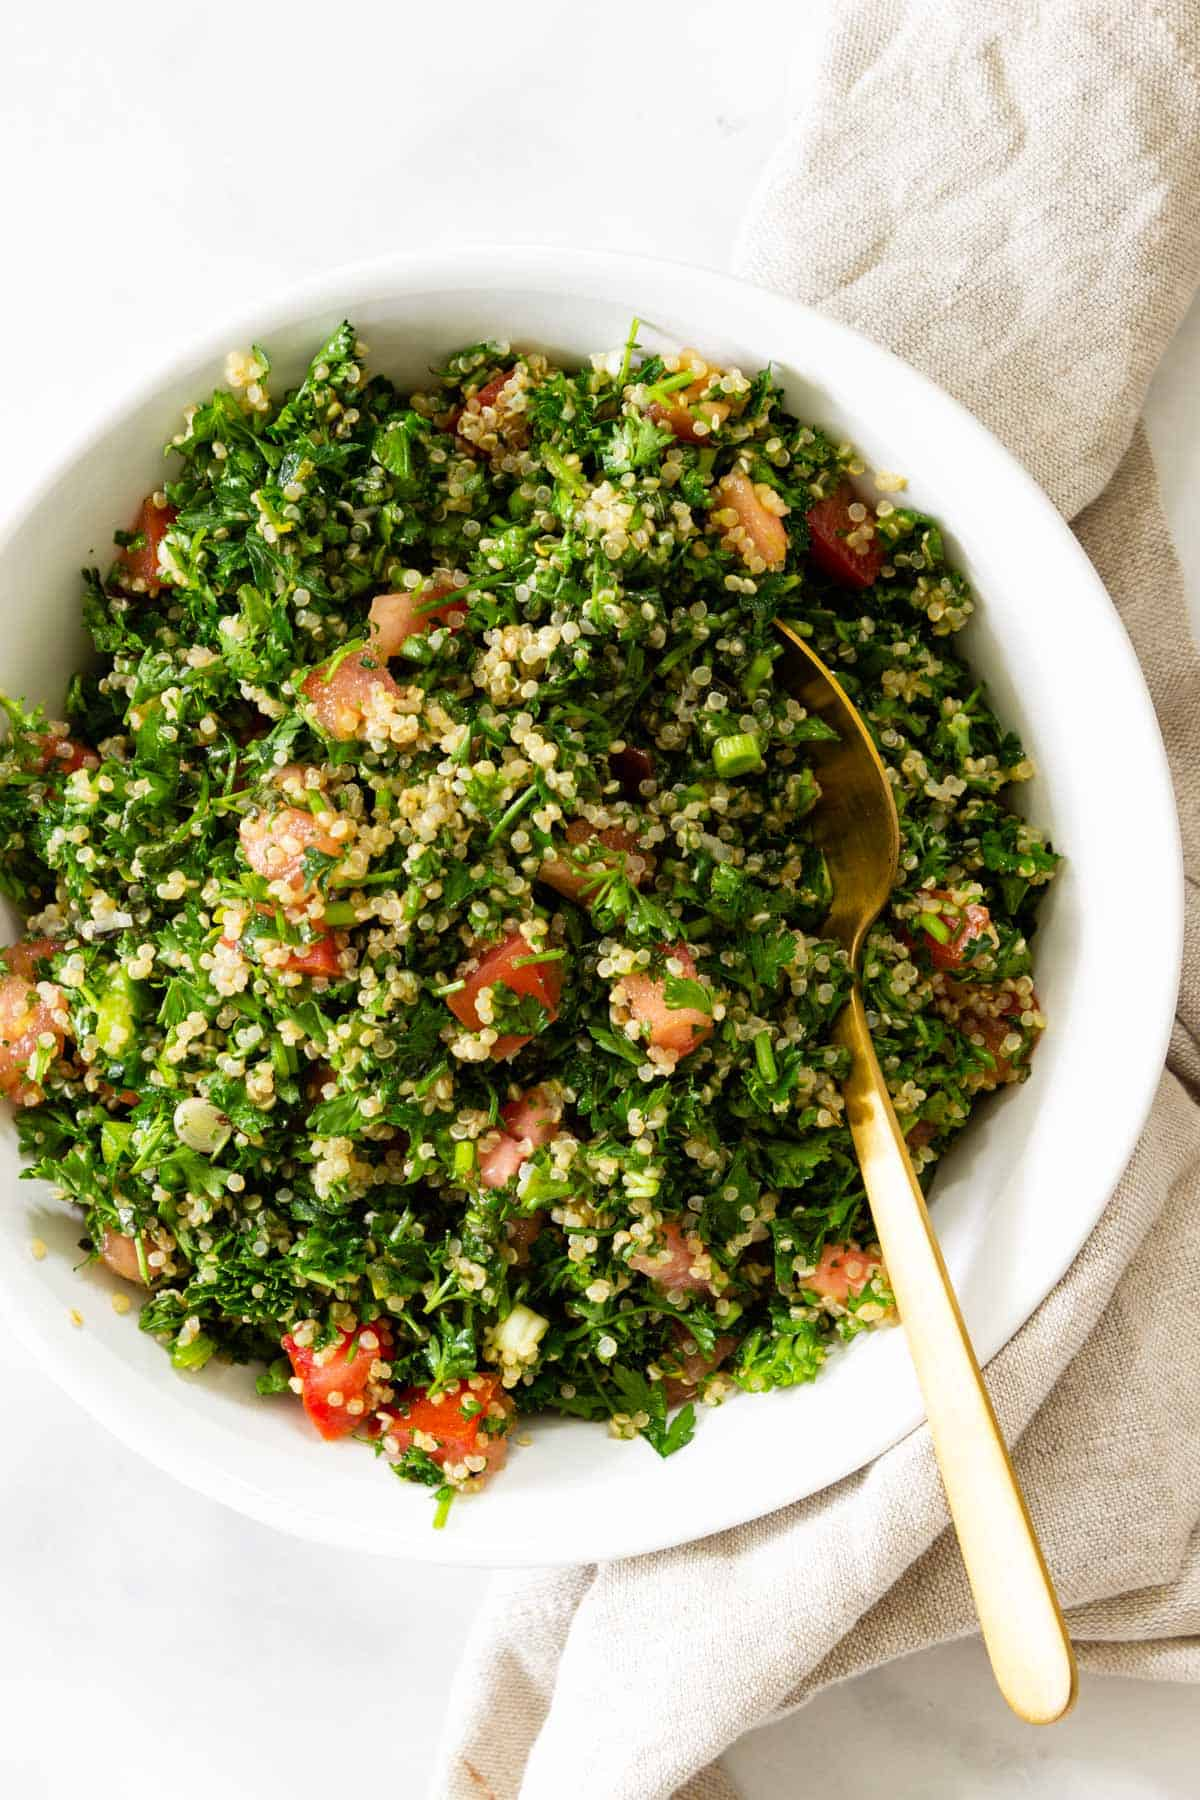 A white bowl of quinoa tabbouleh served with a gold spoon.